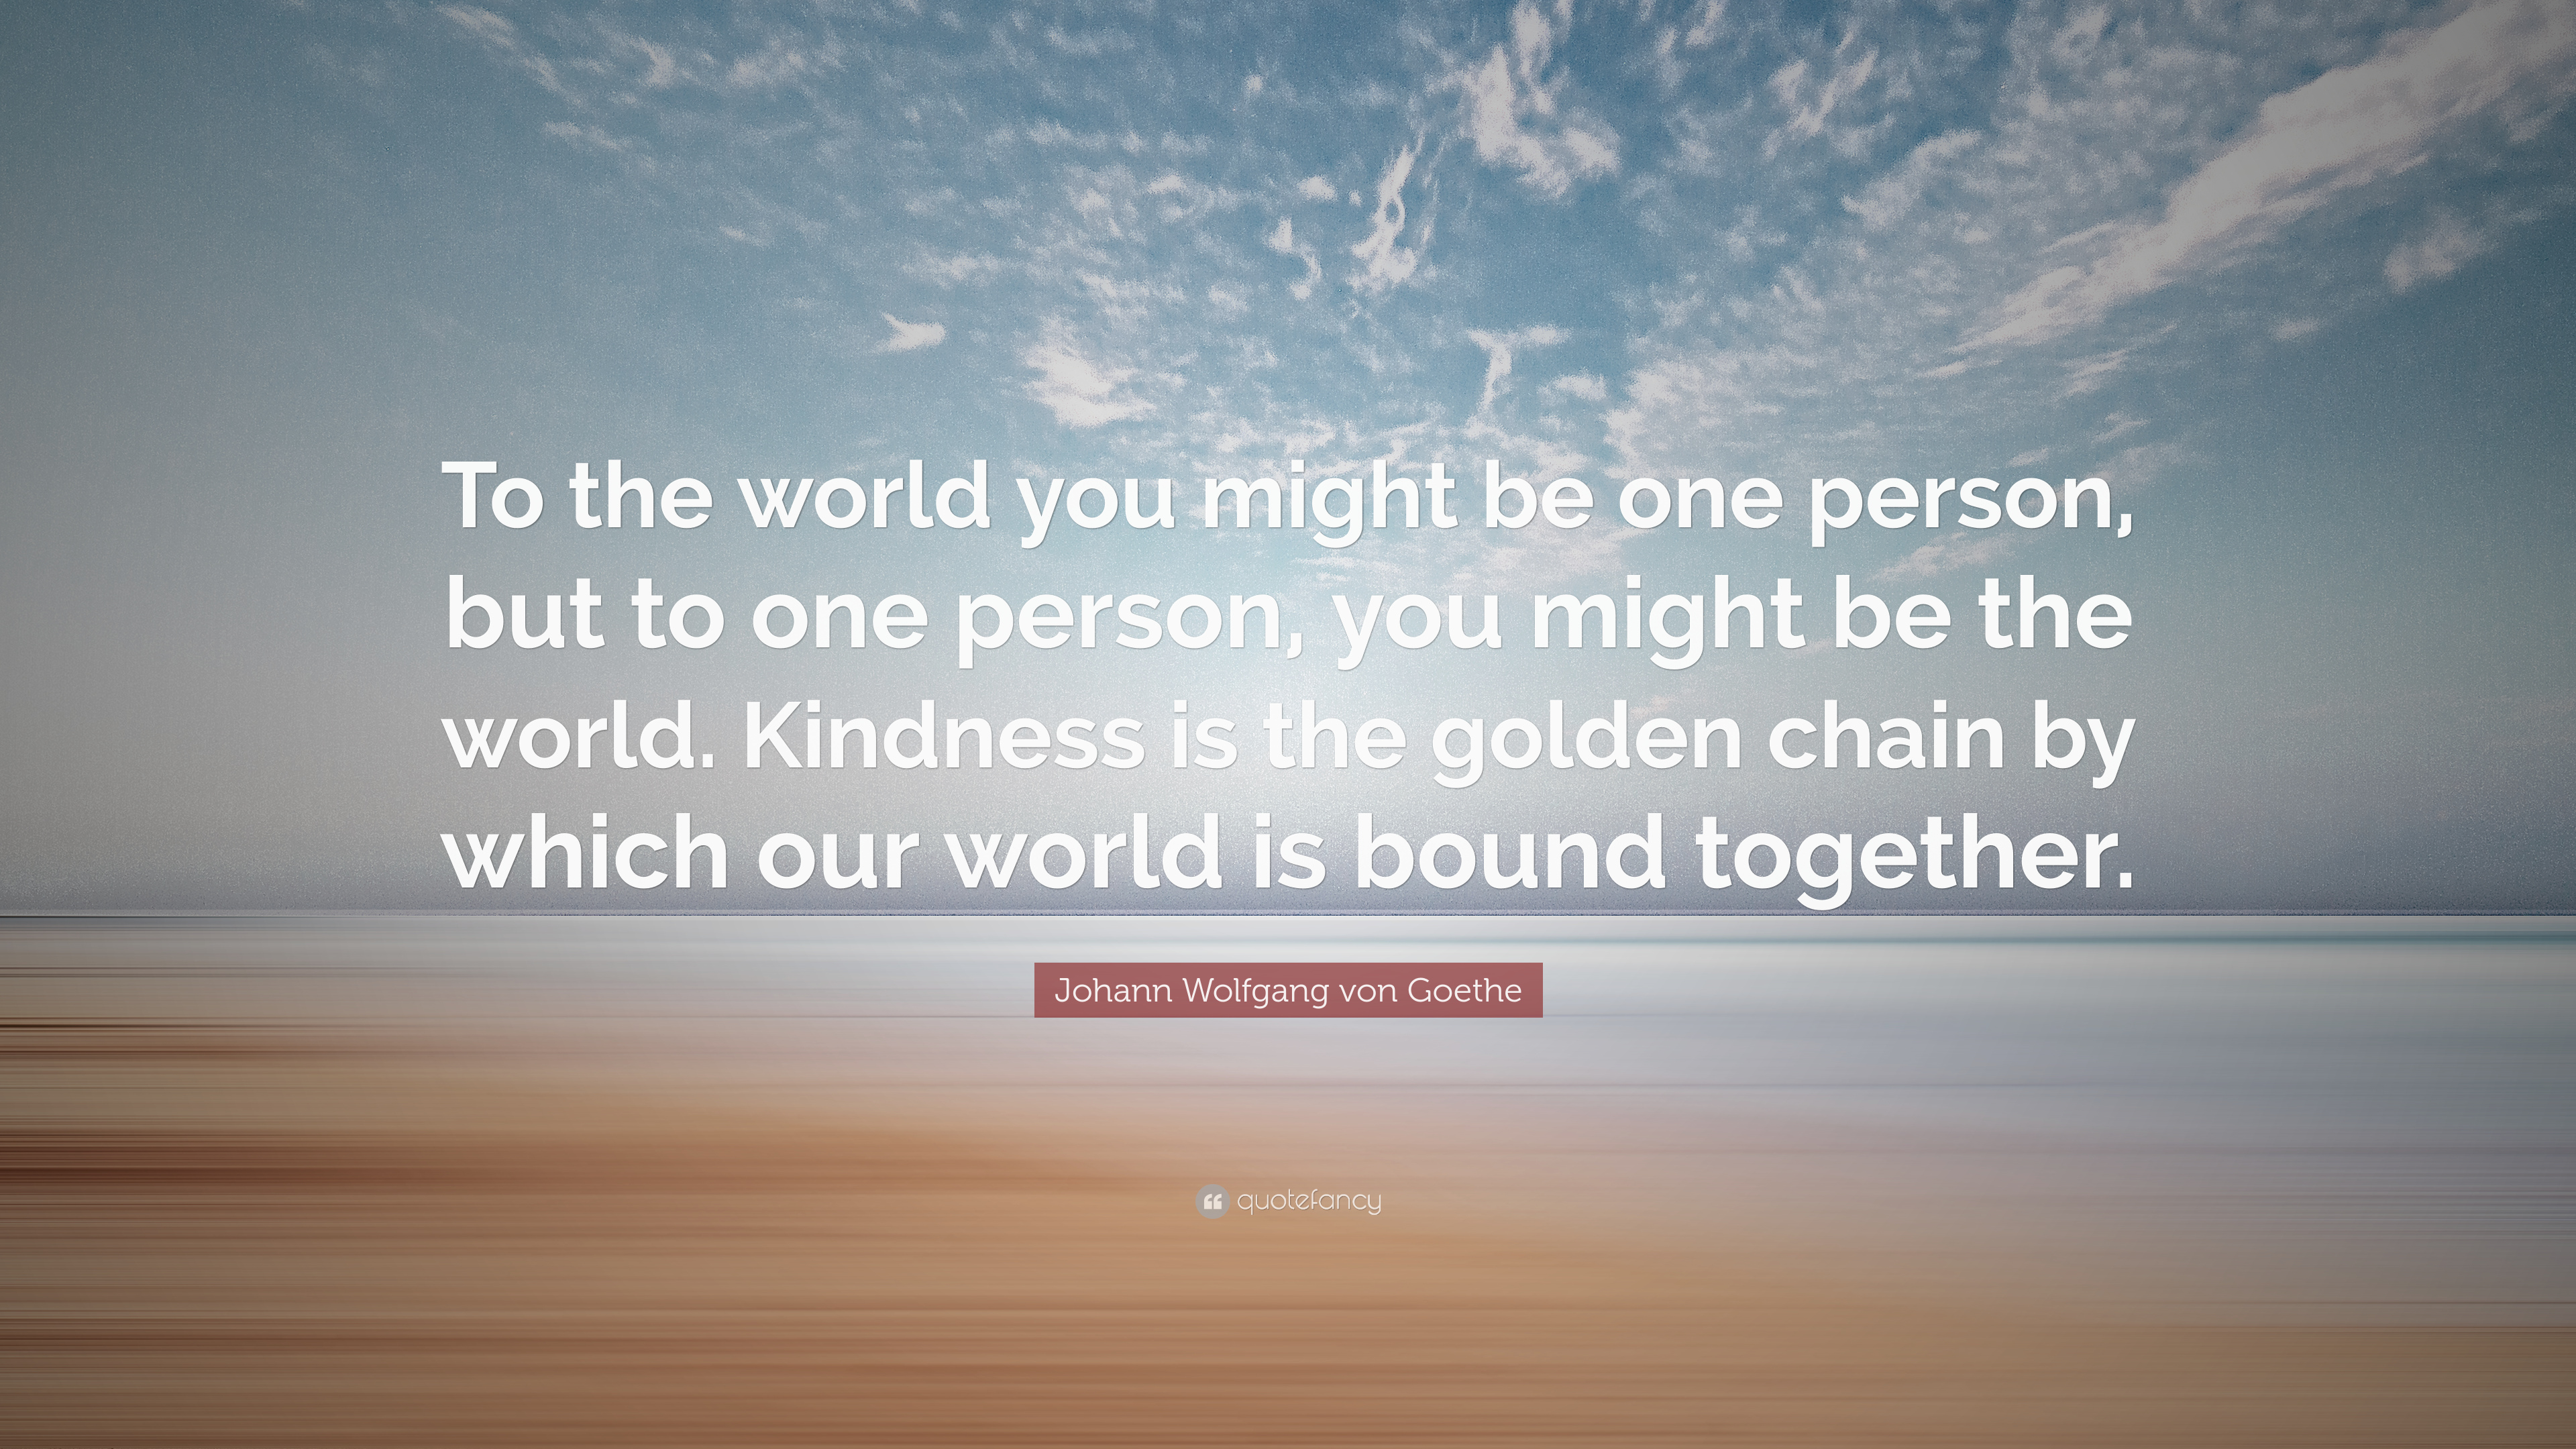 Johann Wolfgang Von Goethe Quote To The World You Might Be One